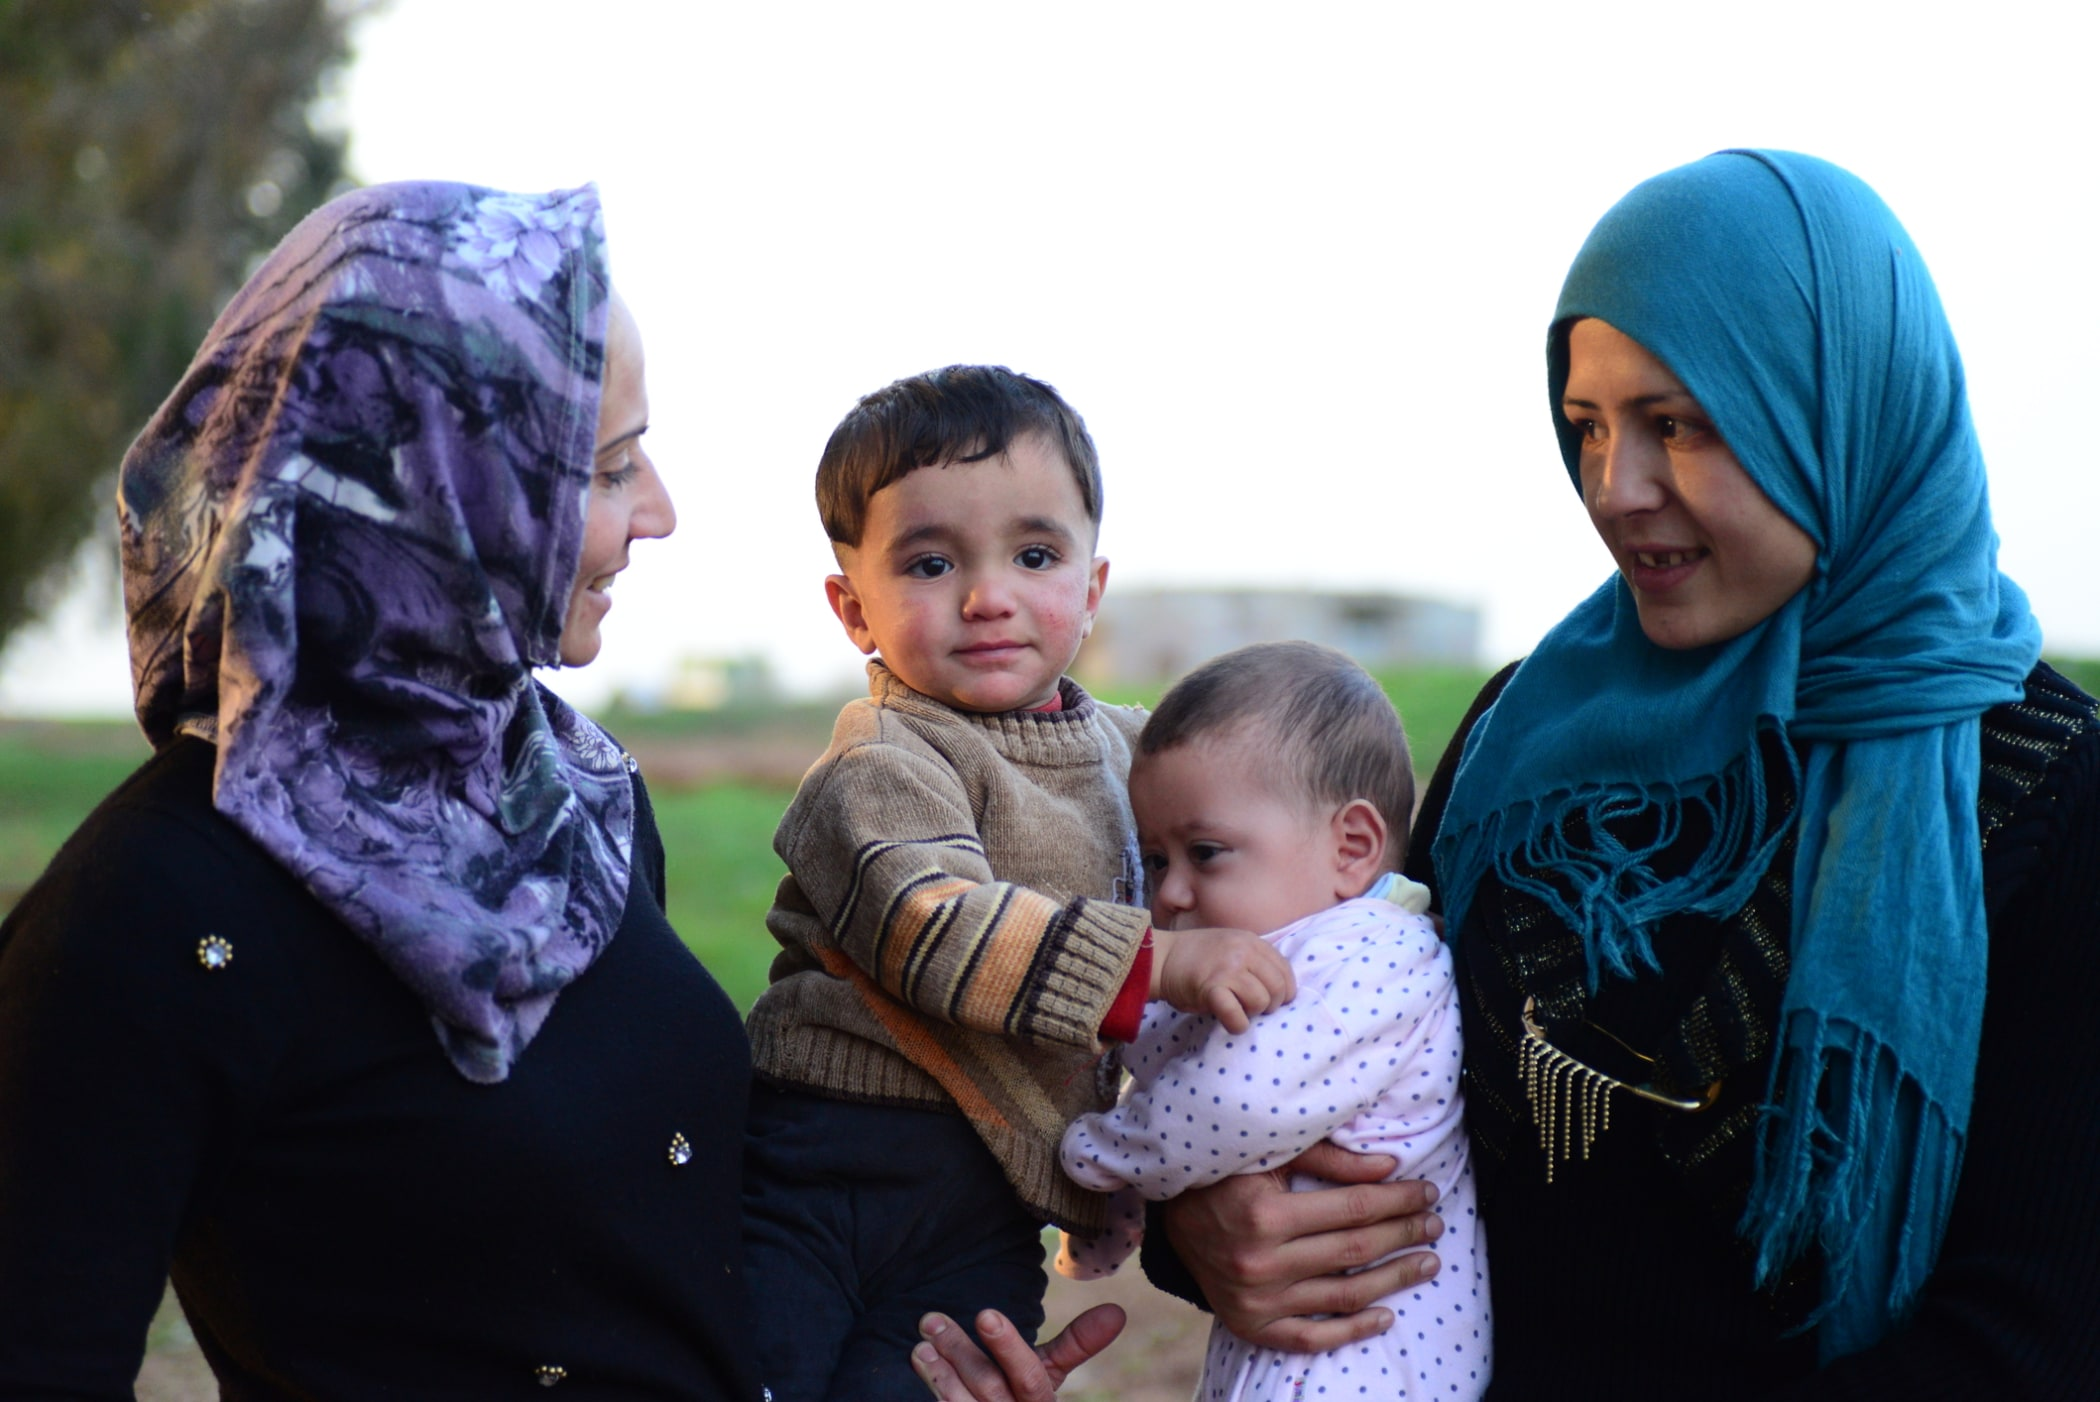 Syrian refugee mothers proudly hold their young children, Turkey.